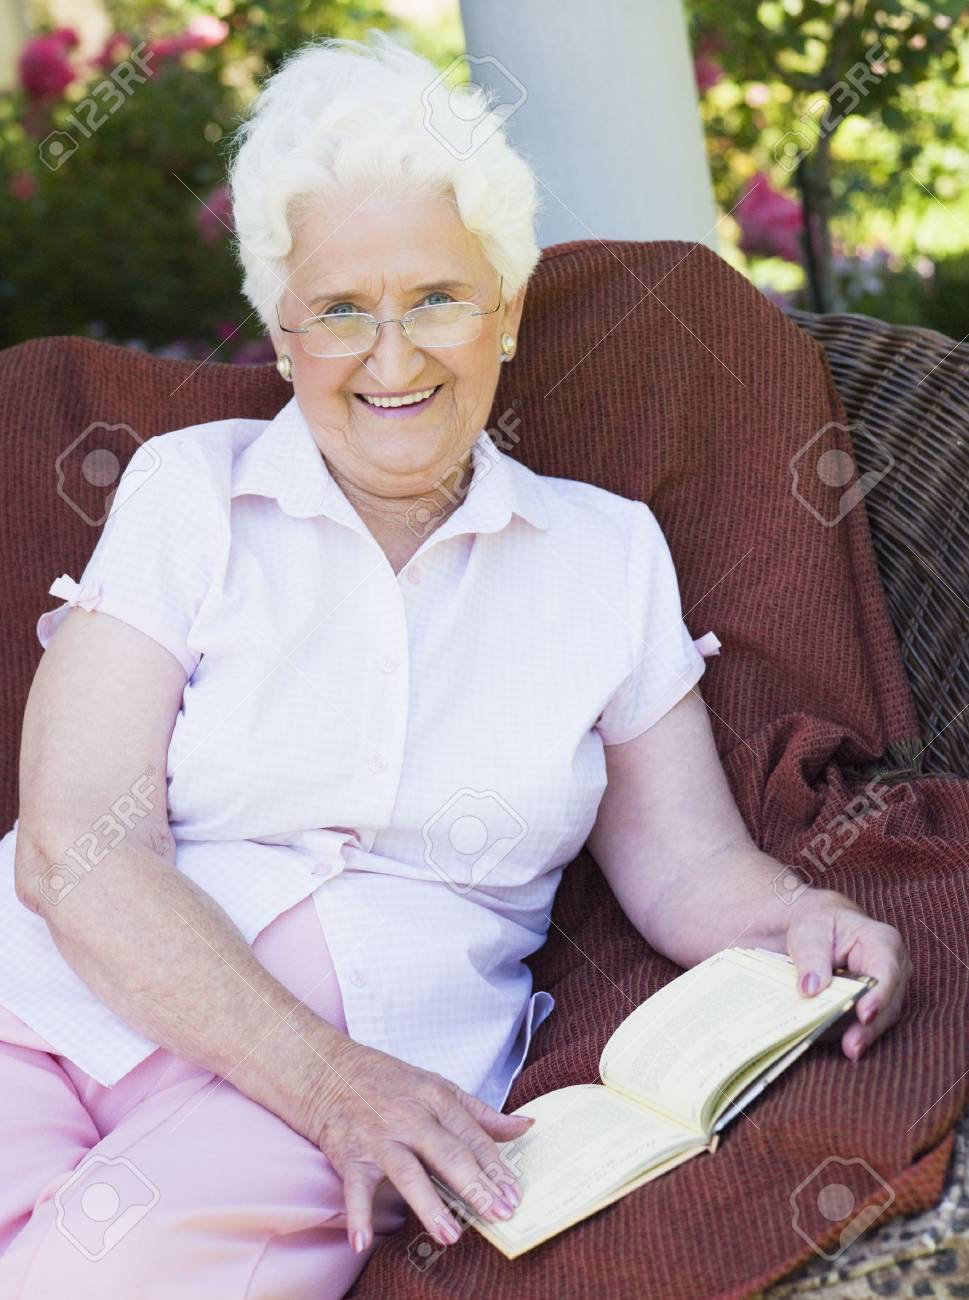 Senior woman sitting outdoors on a chair reading a book Stock Photo - 3177575